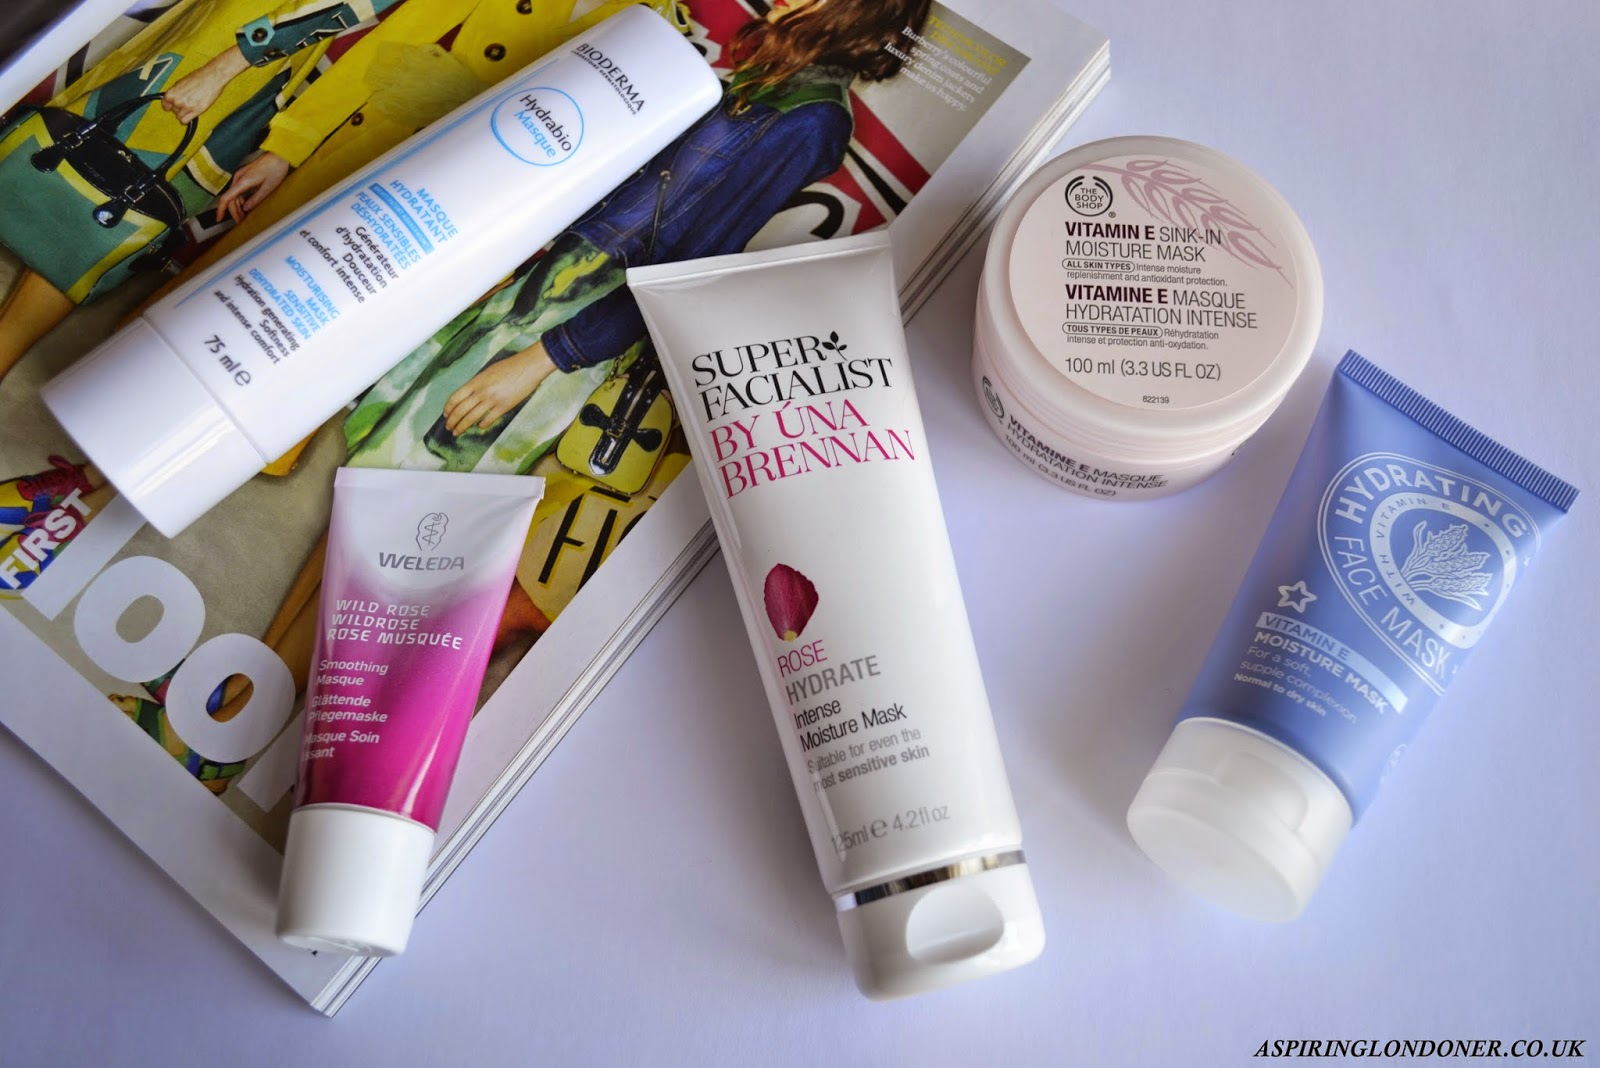 Hydrating Drugstore Face Masks Review ft Superfacialist, Bioderma, Weleda, Superdrug & The Body Shop - Aspiring Londoner